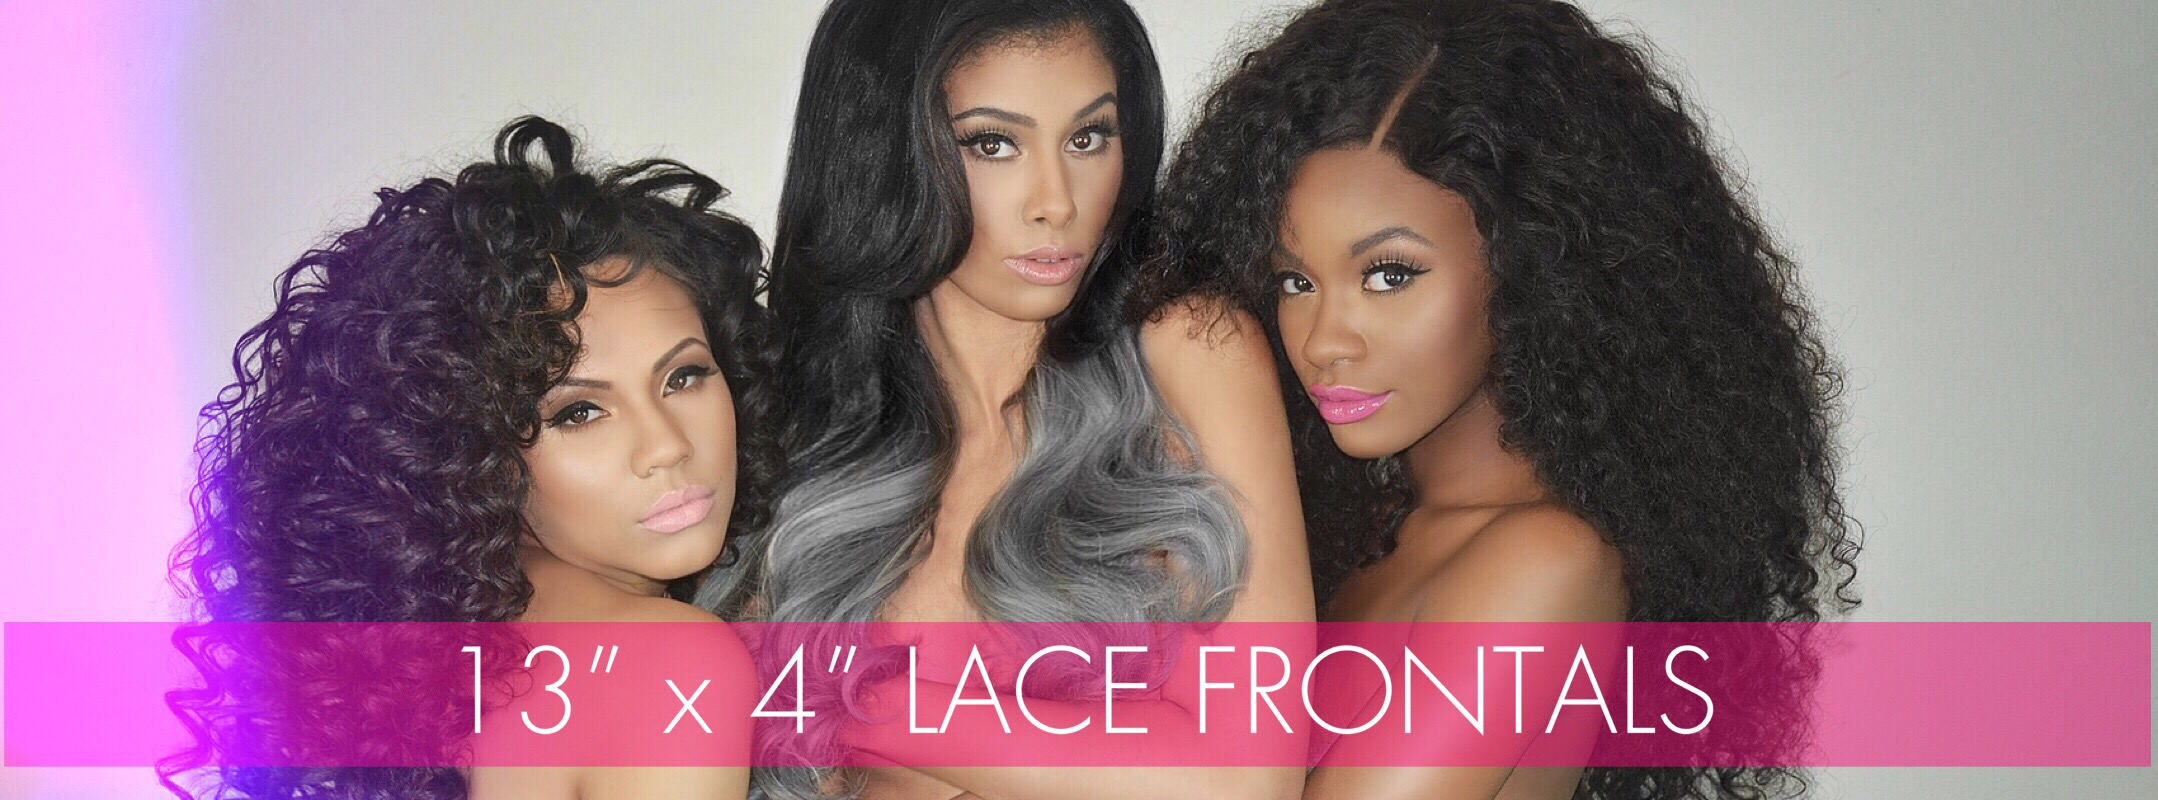 "13"" X 4"" Lace Frontals"